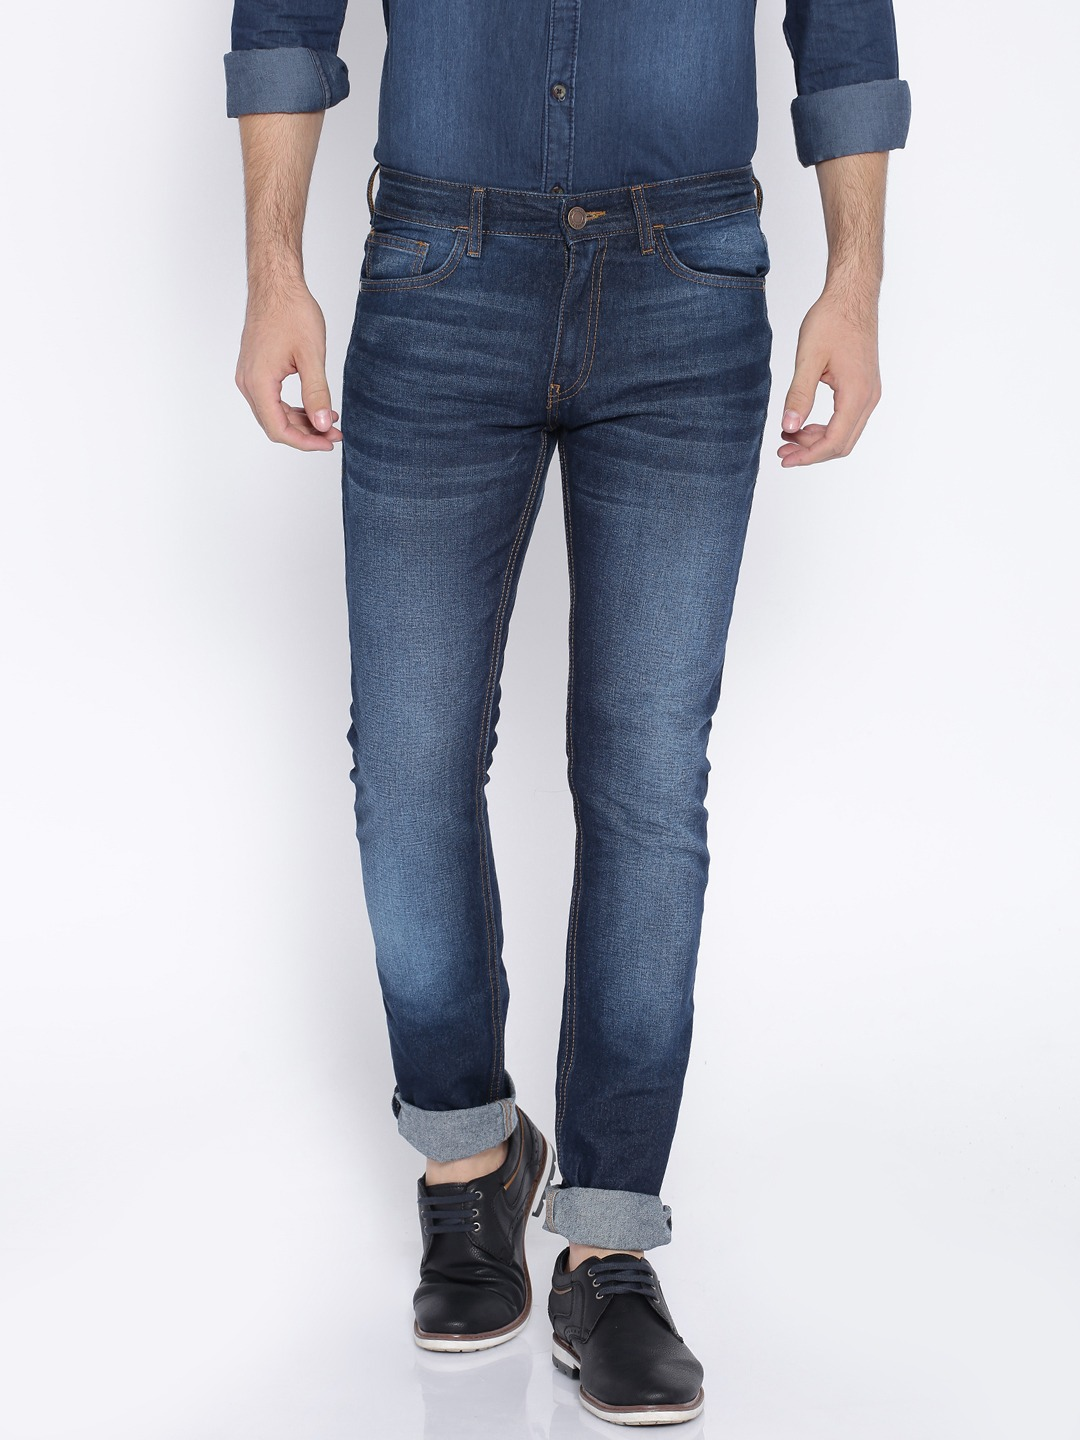 Jeans for Men - Buy Men Jeans Online - Regular, Low Waist Jeans ...